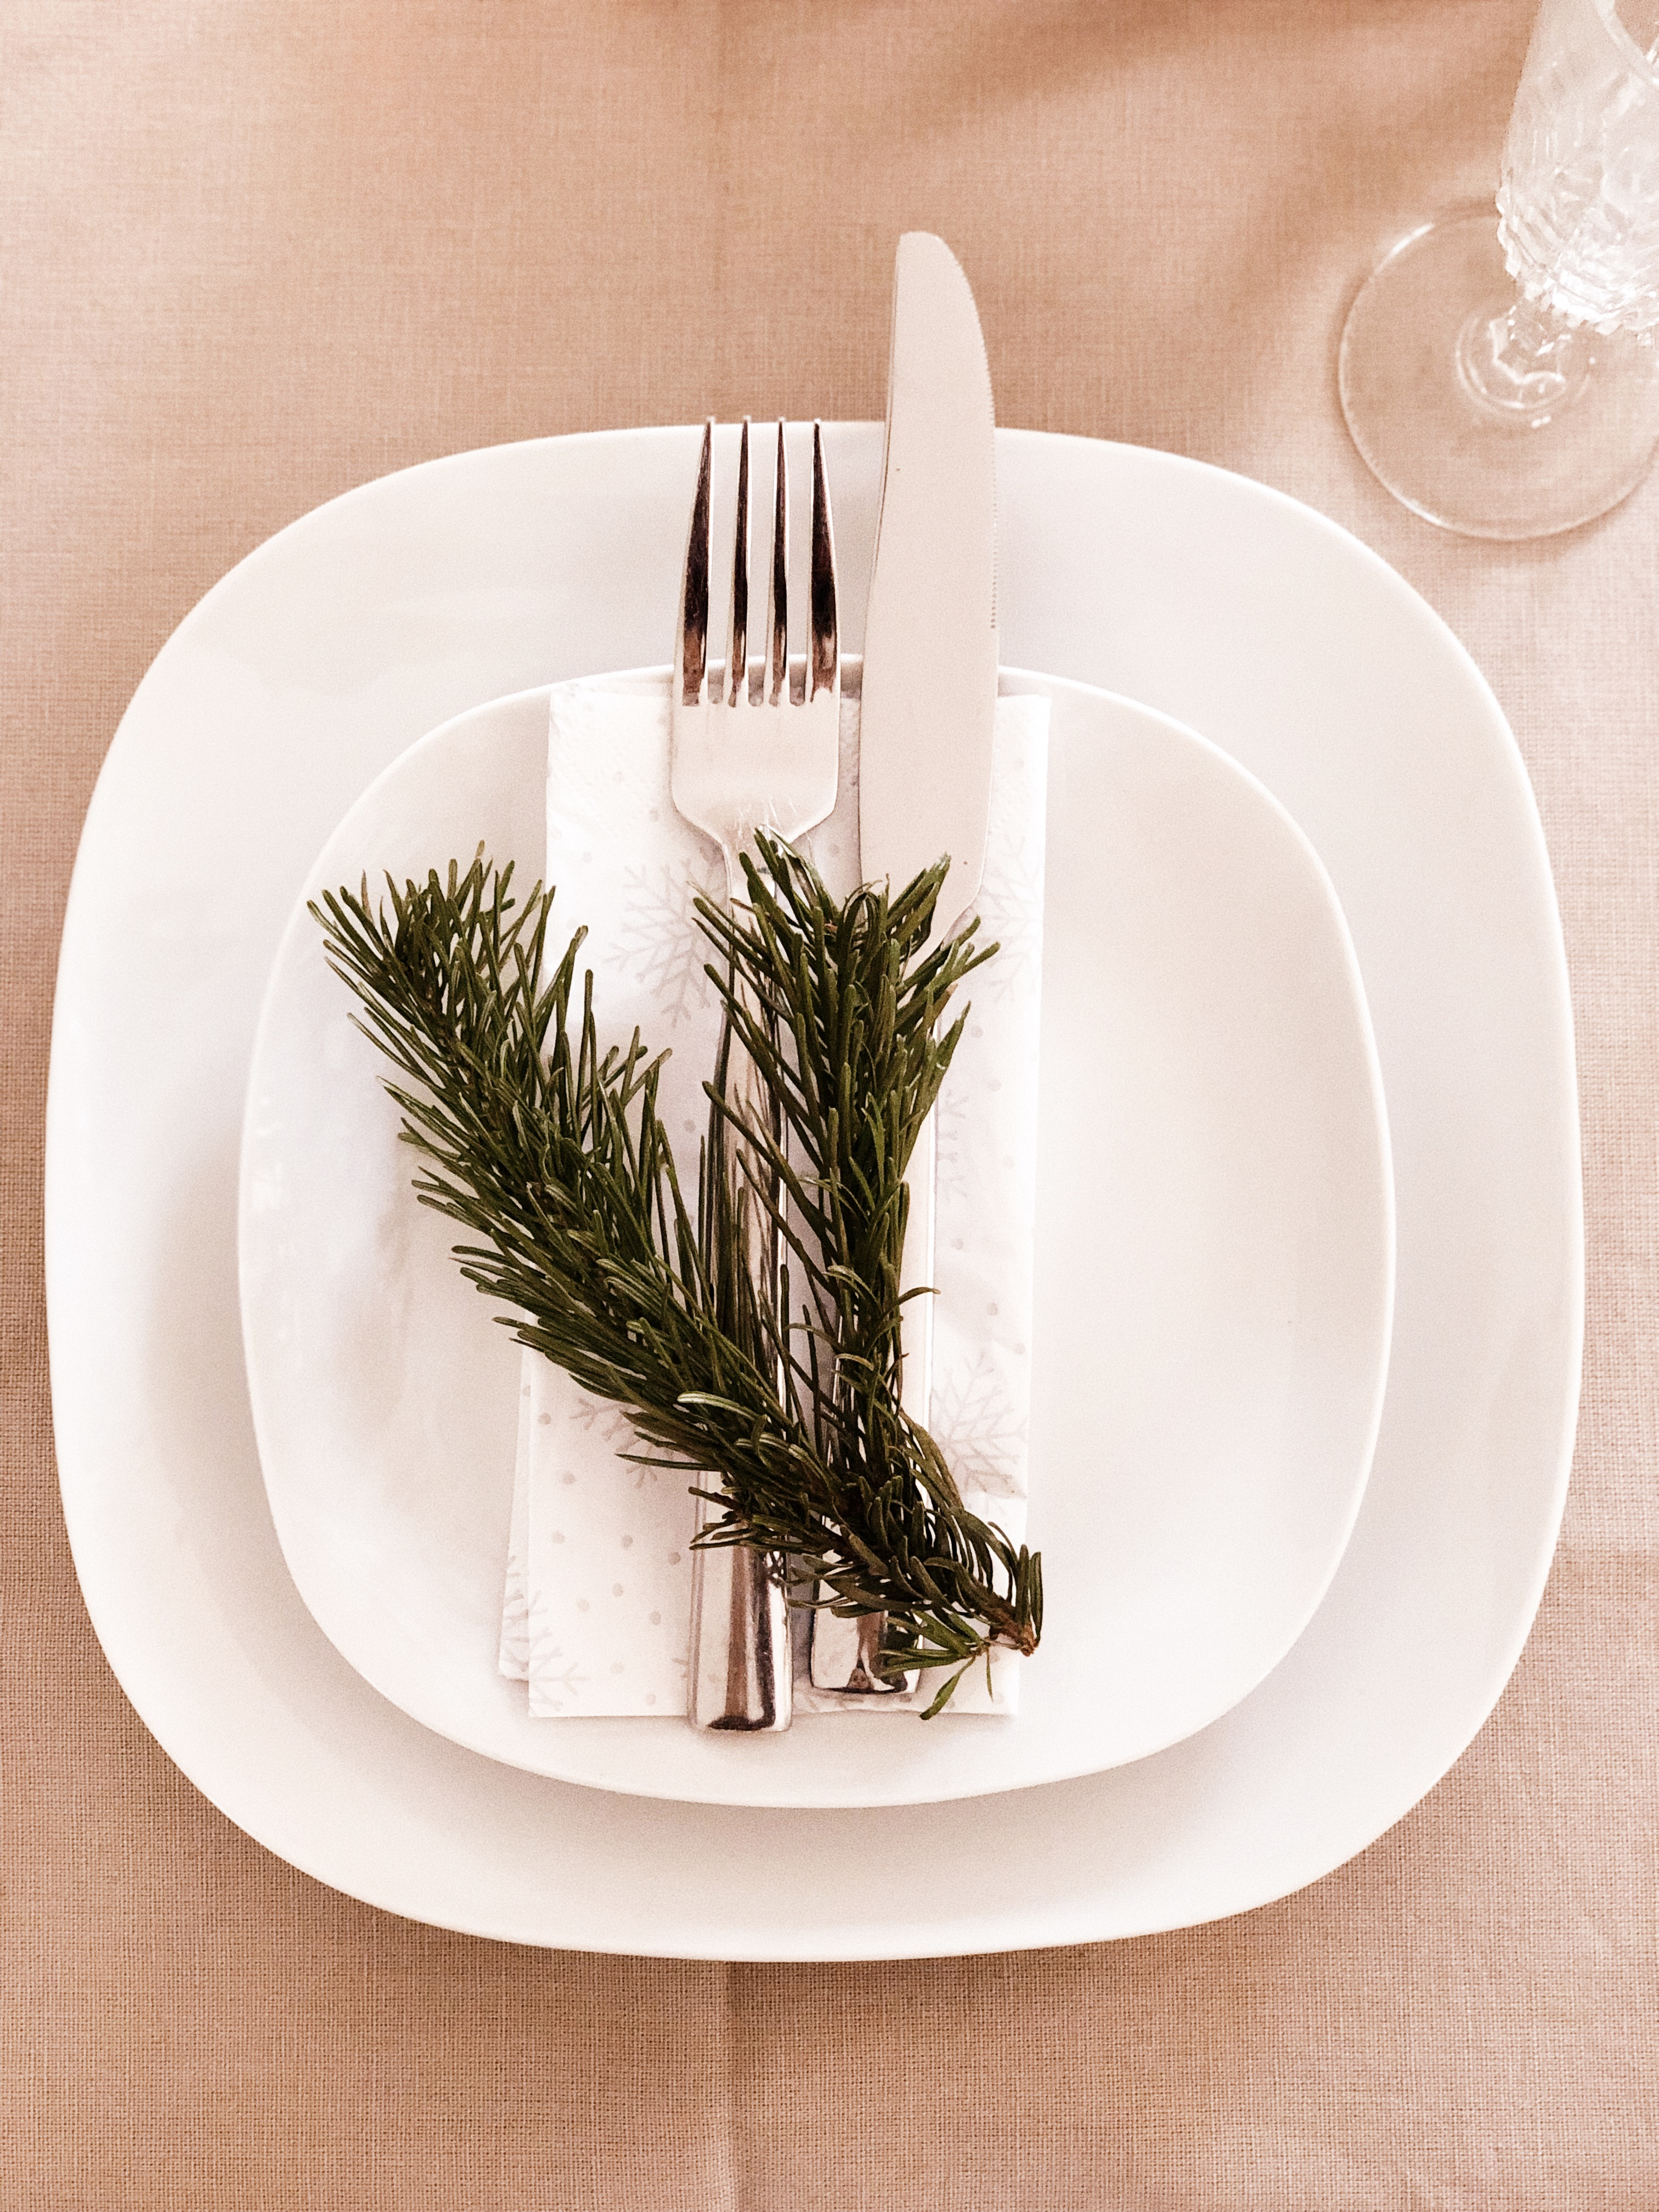 plates cutlery and fern decoration